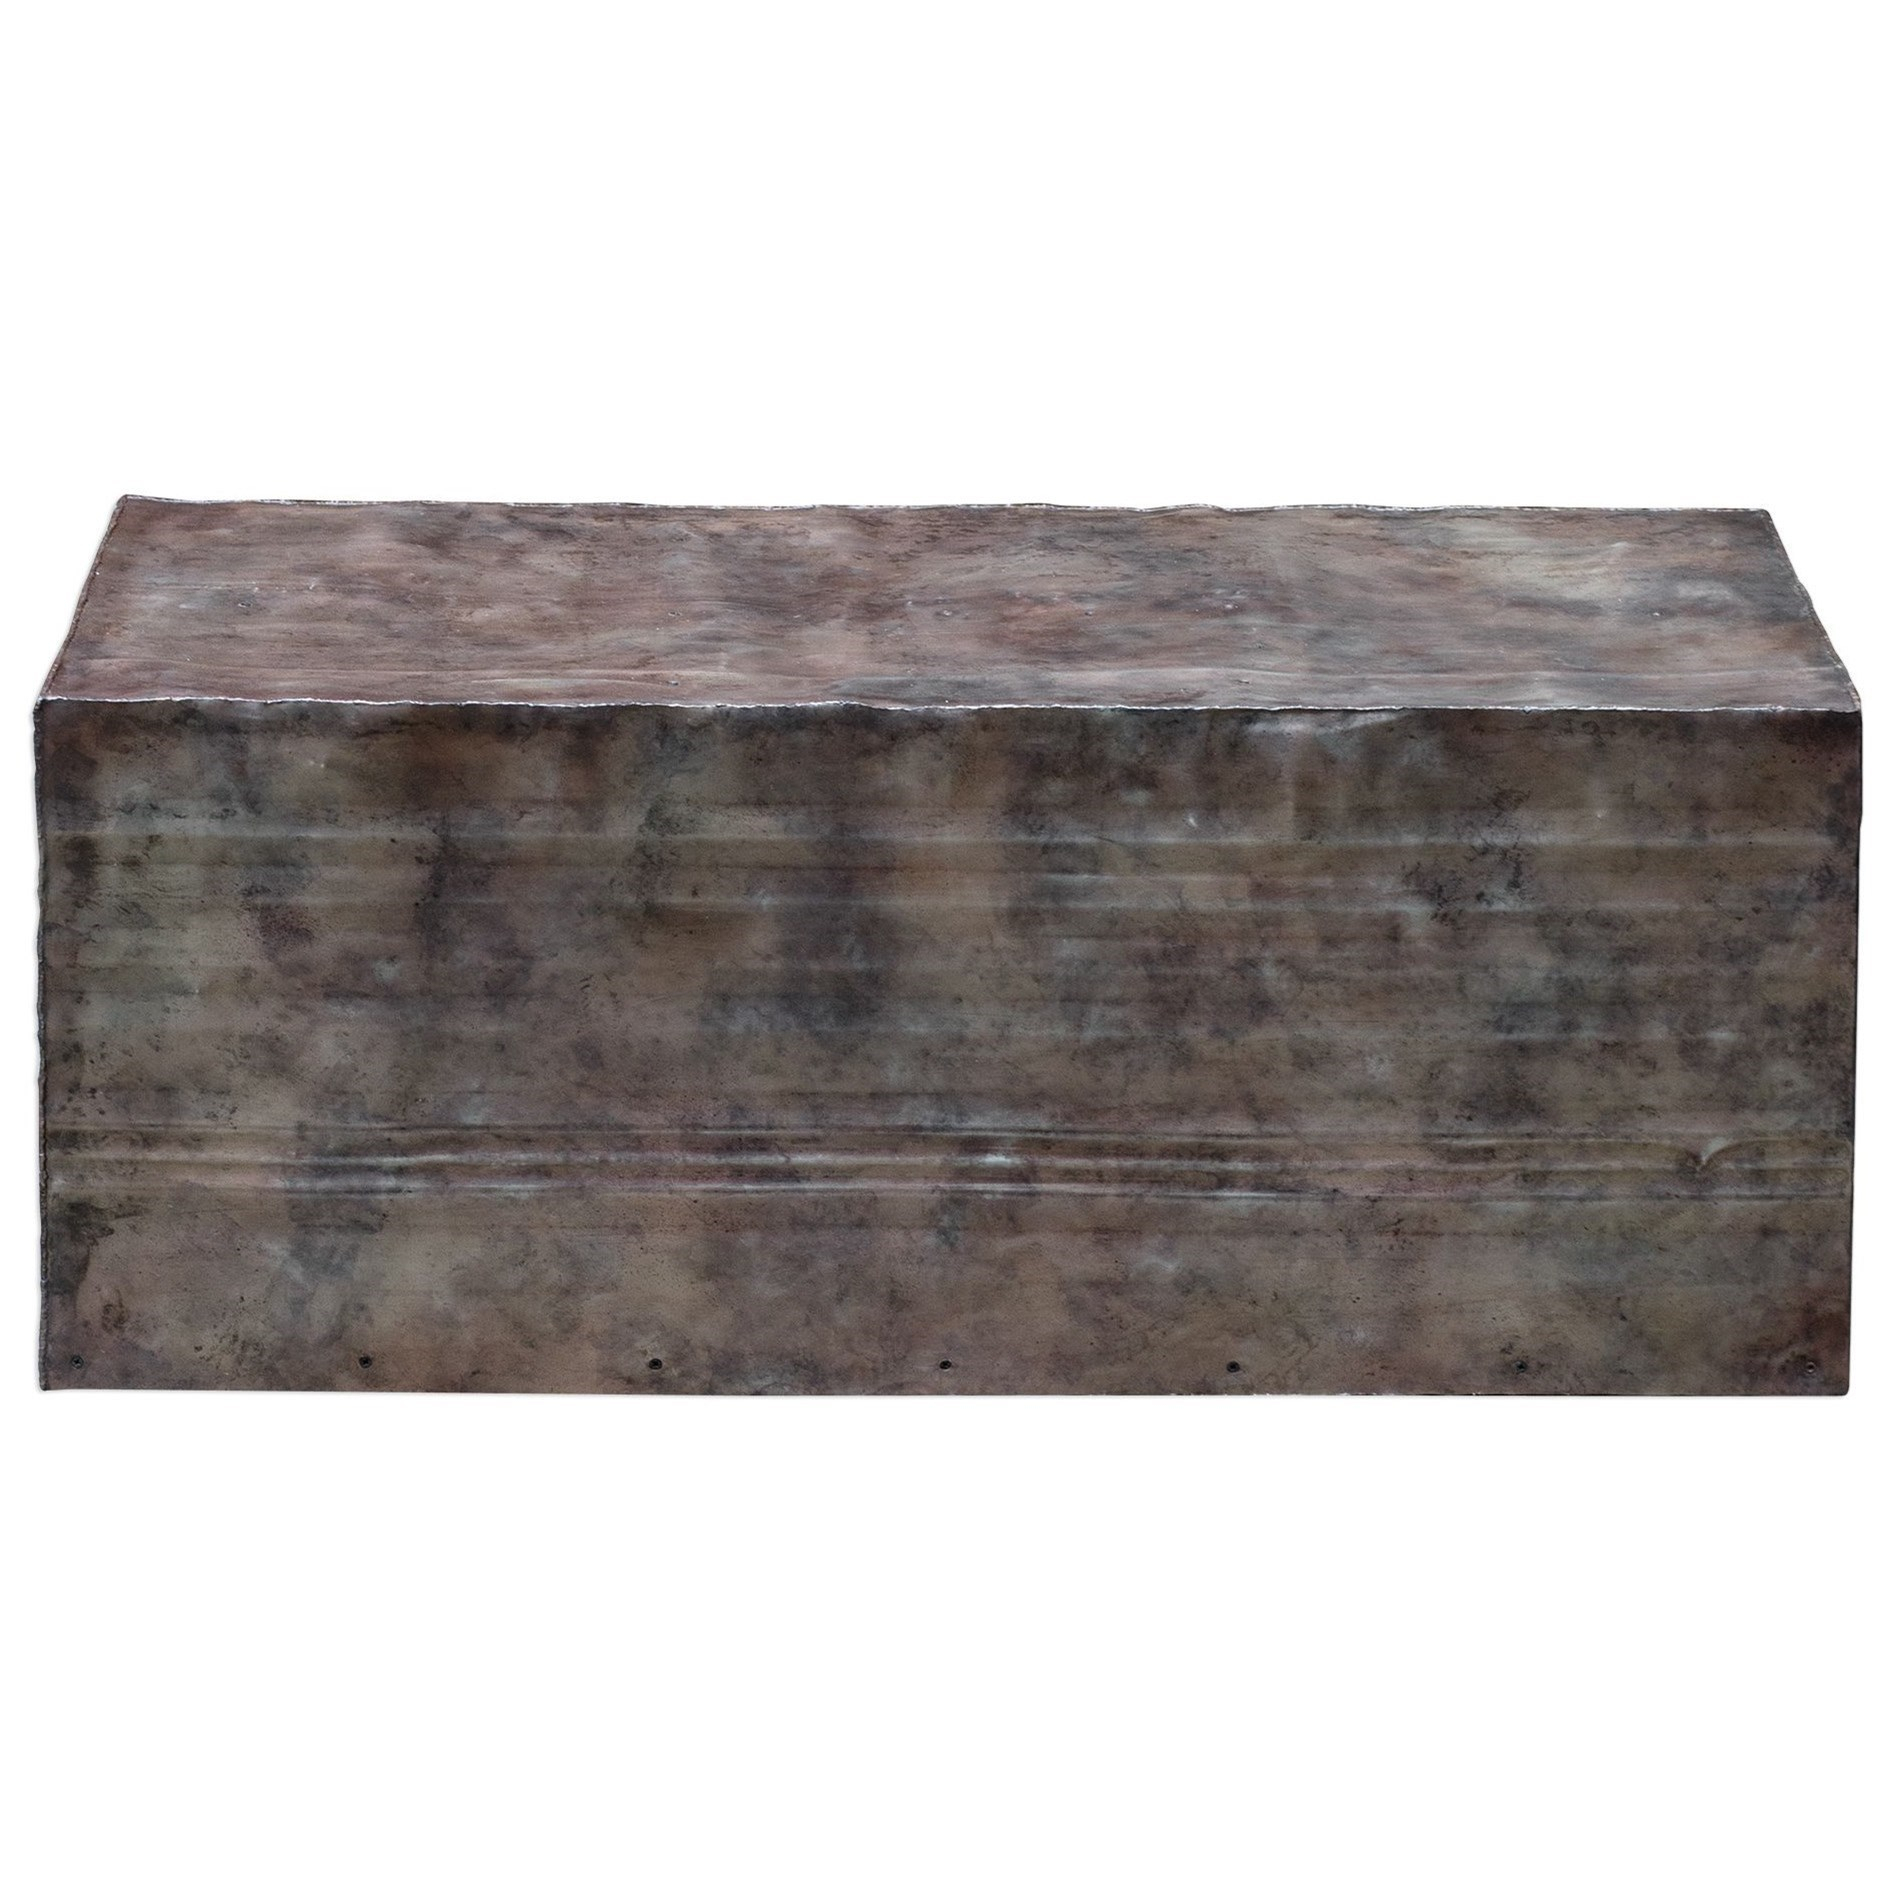 Accent Furniture - Occasional Tables Breck Natural Steel Coffee Table Uttermost At Dunk & Bright Furniture in Jessenia Sideboards (Image 2 of 30)